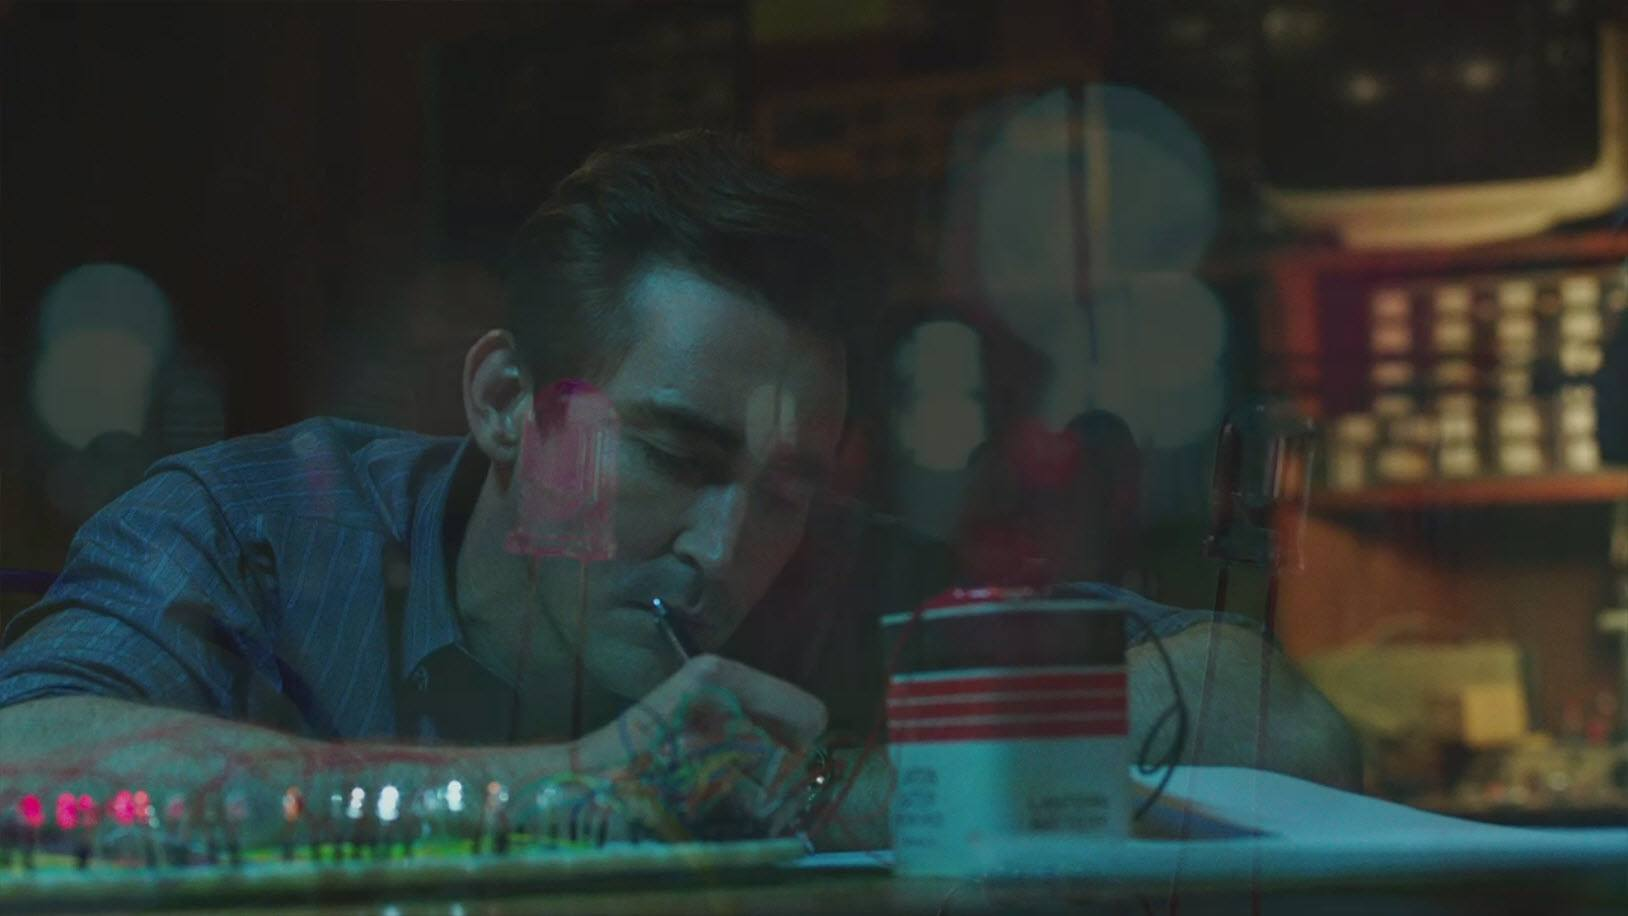 lee pace joe bi man working computer board halt catch fire 2015